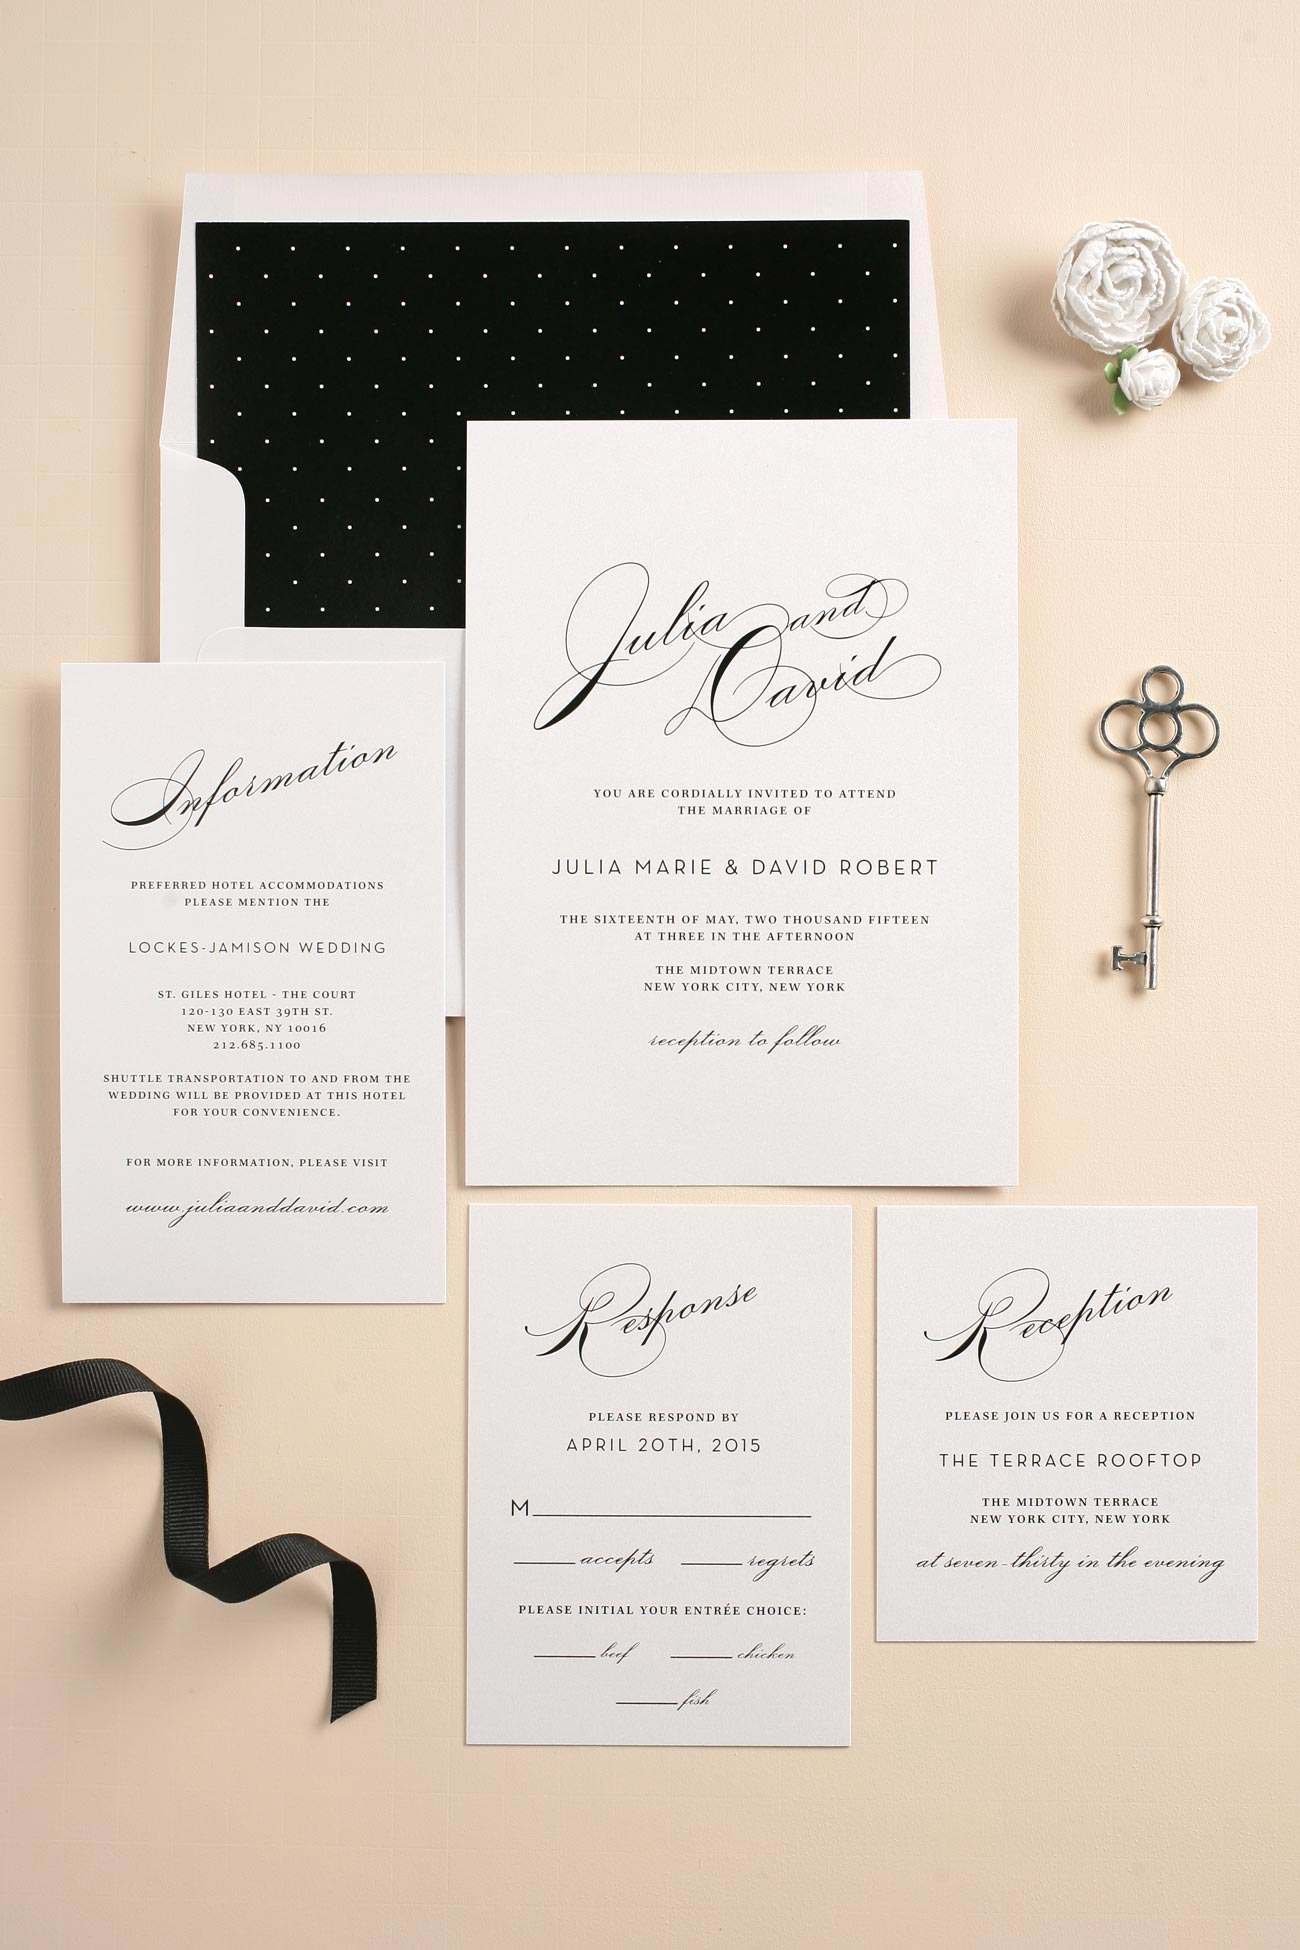 Black and white vintage wedding invitations with polka dot accents